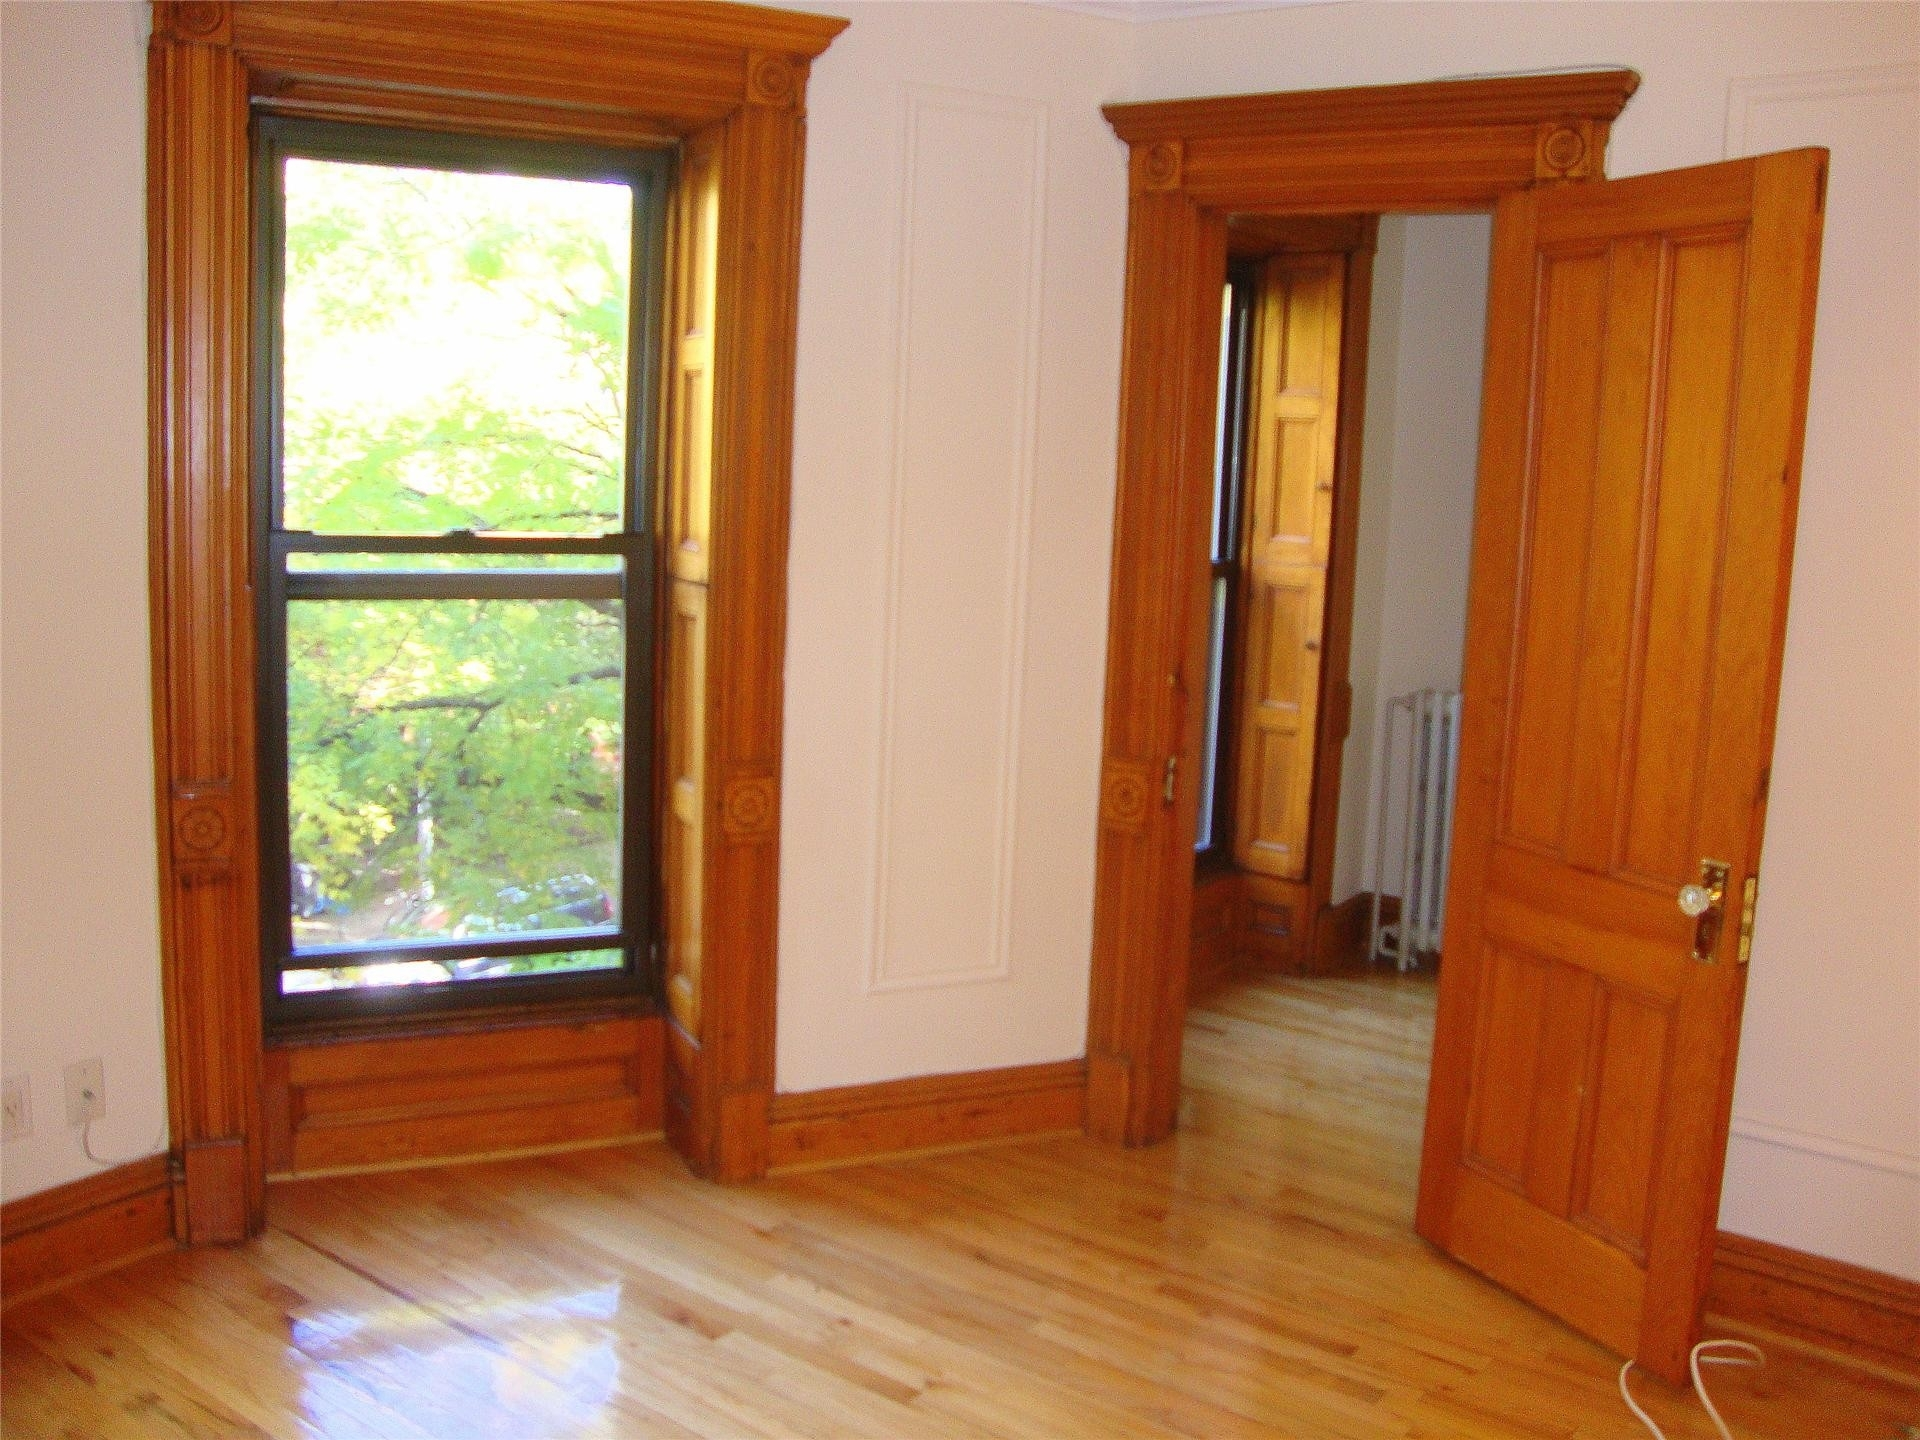 3. 建於204 Prospect Pl, Prospect Heights, Brooklyn, NY